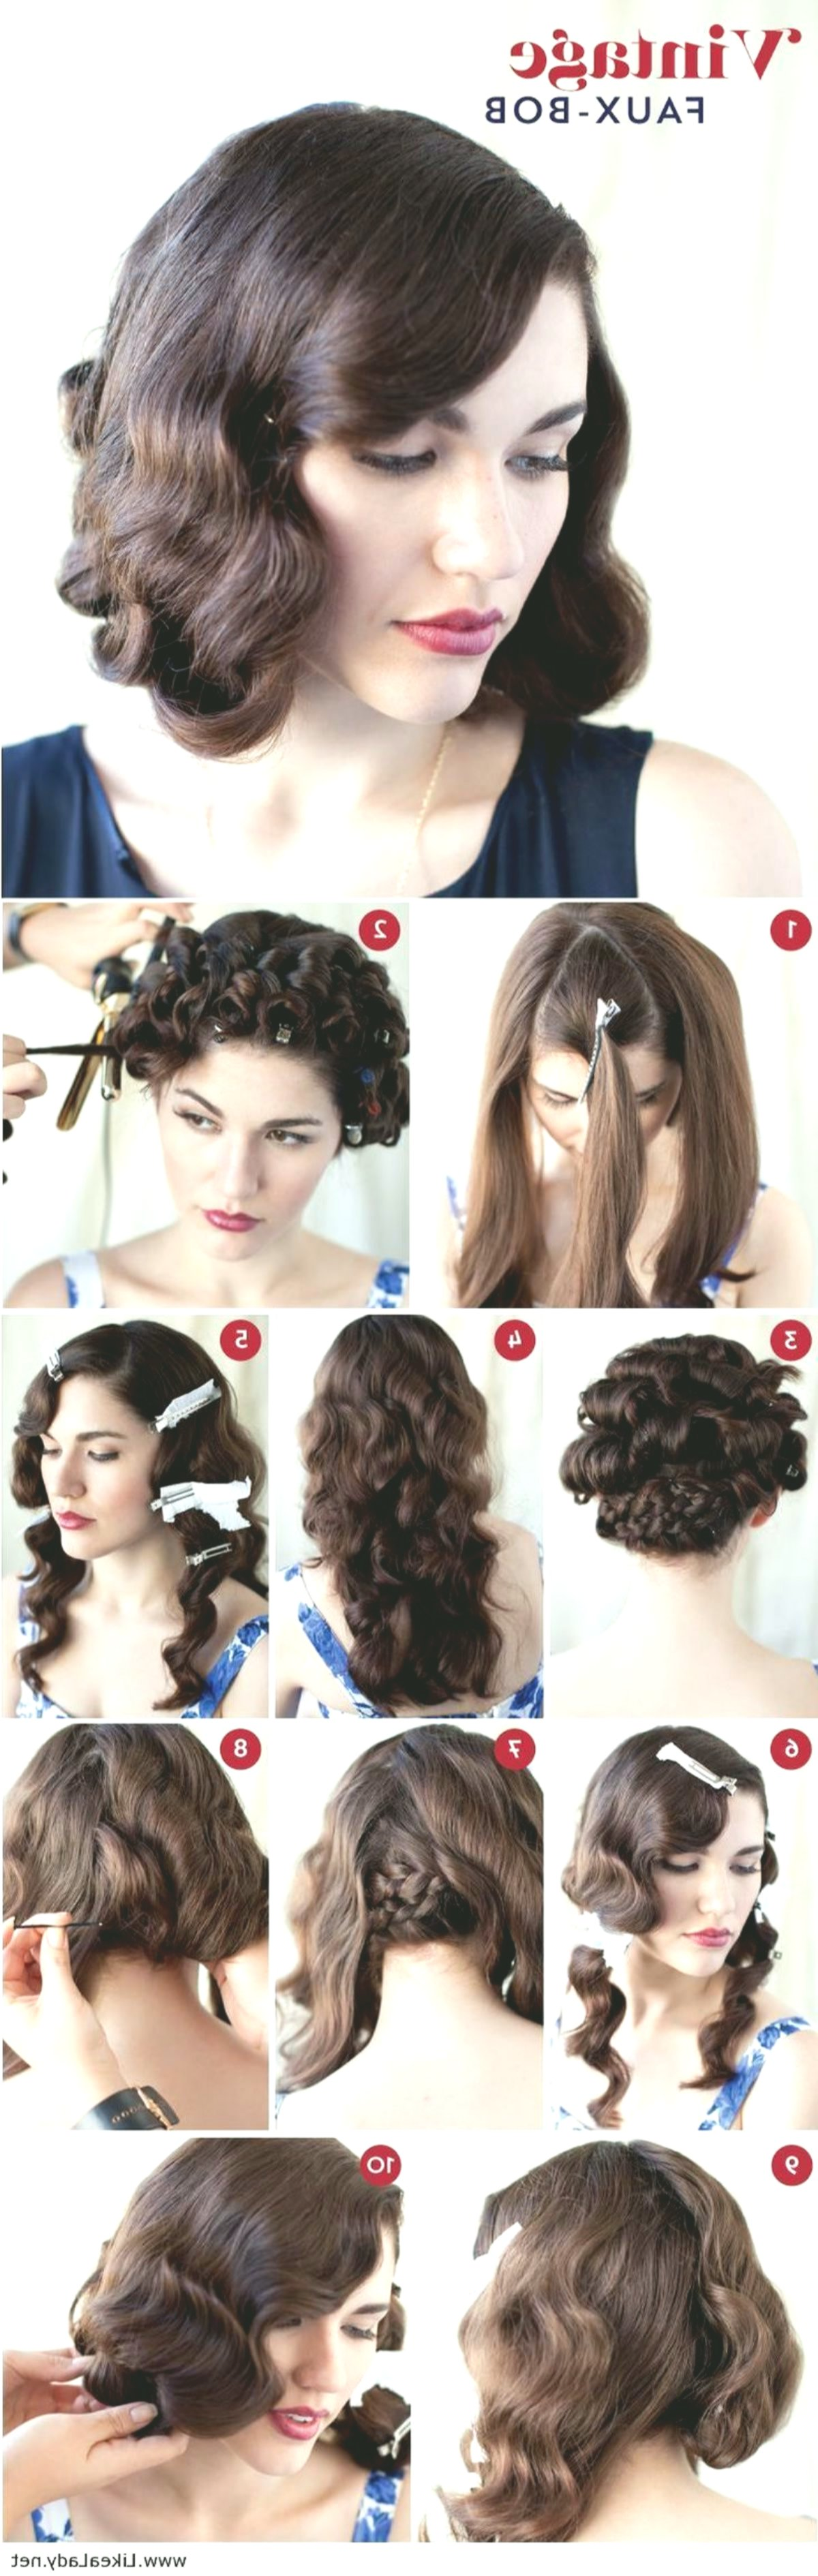 fantastic 50s hairstyle inspiration-Nice 50s hairstyle decor